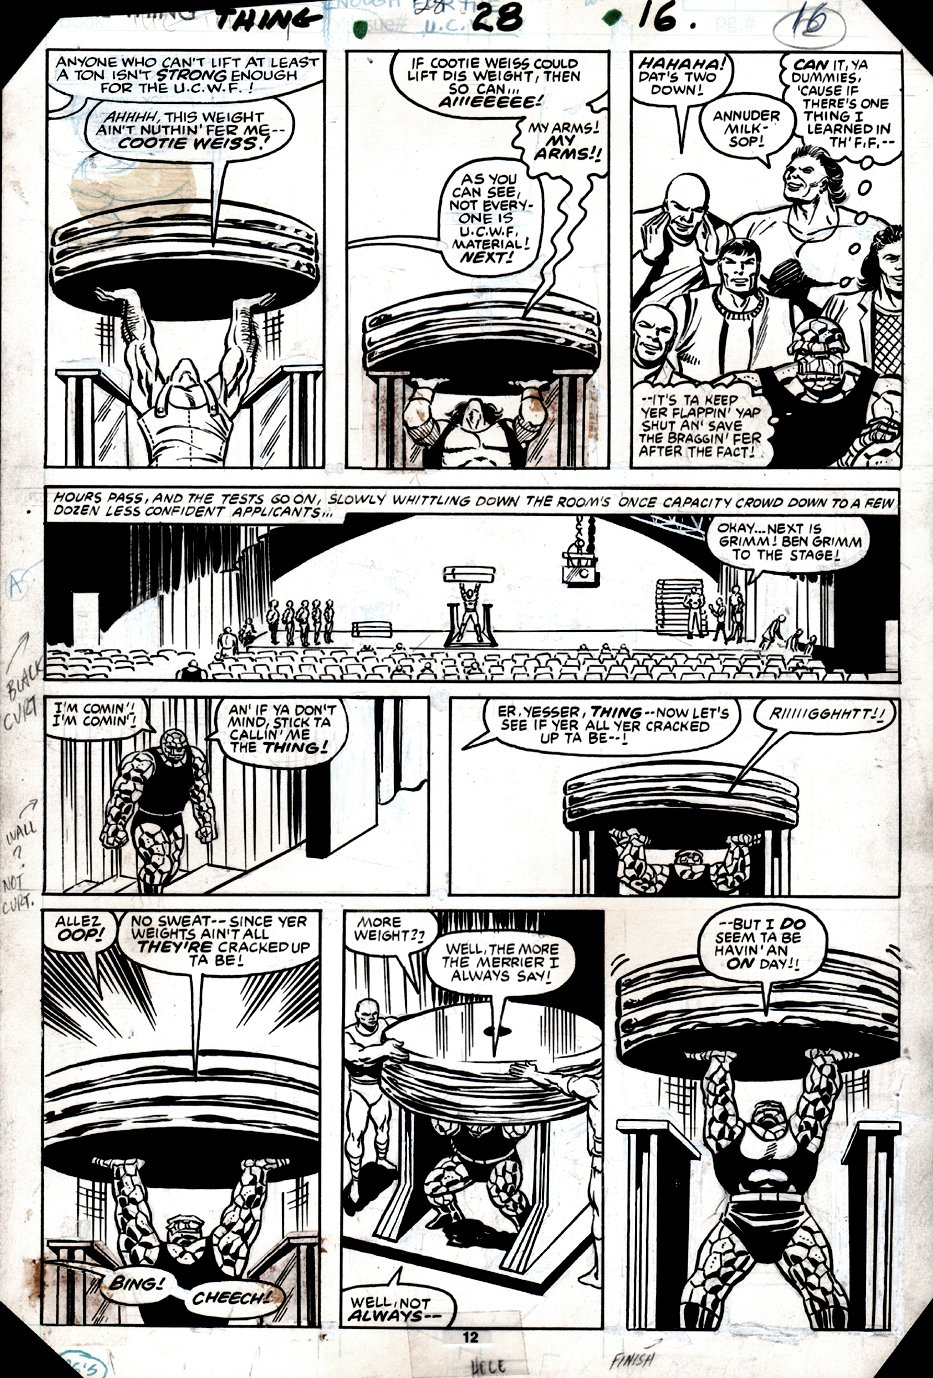 The Thing #28 p 12 (THING IN 6 PANELS LIFTING WEIGHTS!) 1985